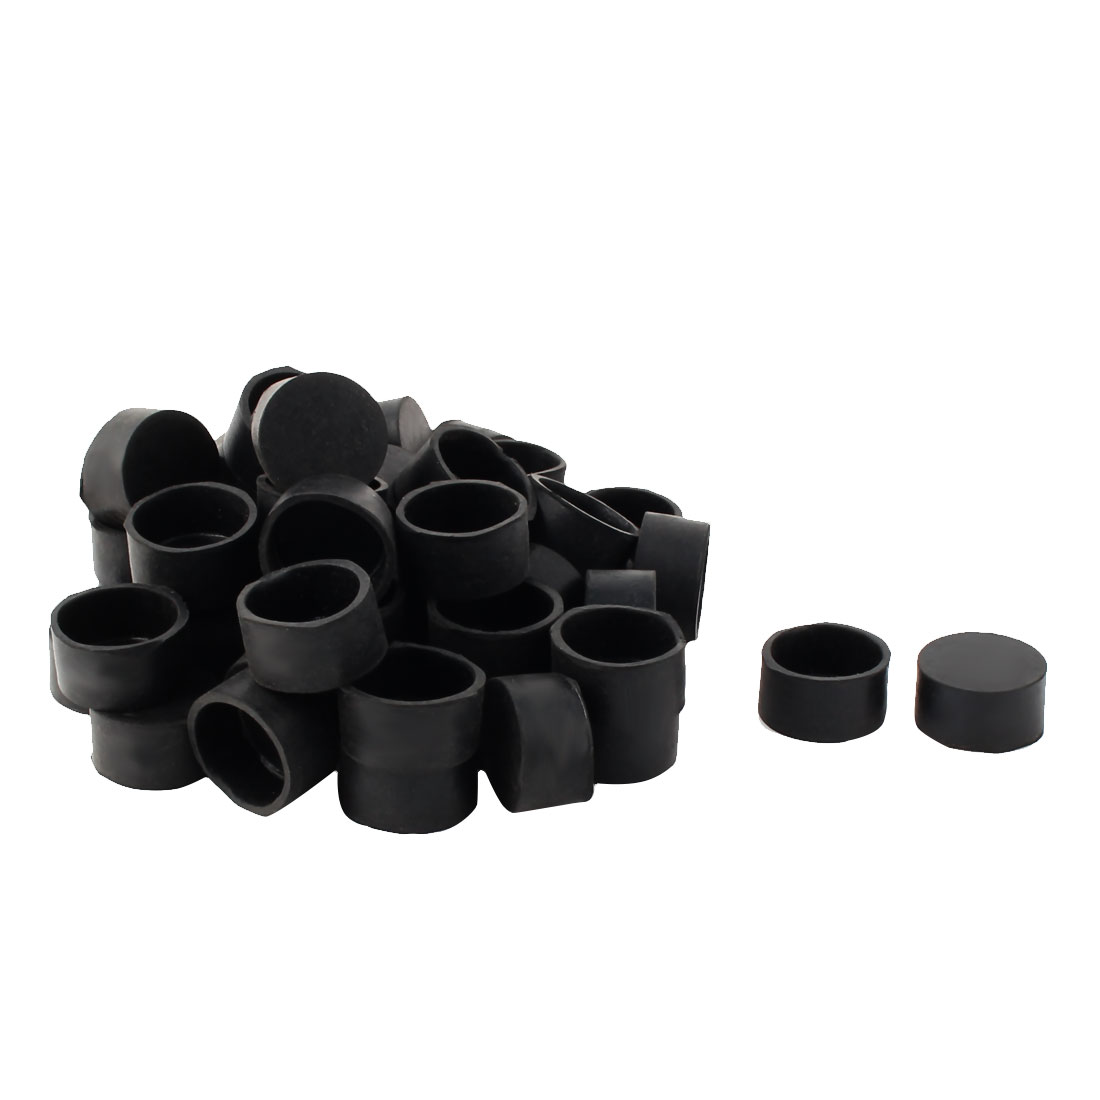 31mm Dia Round Tube Insert Chair Desk Leg Foot Rubber Caps Cover Black 50pcs